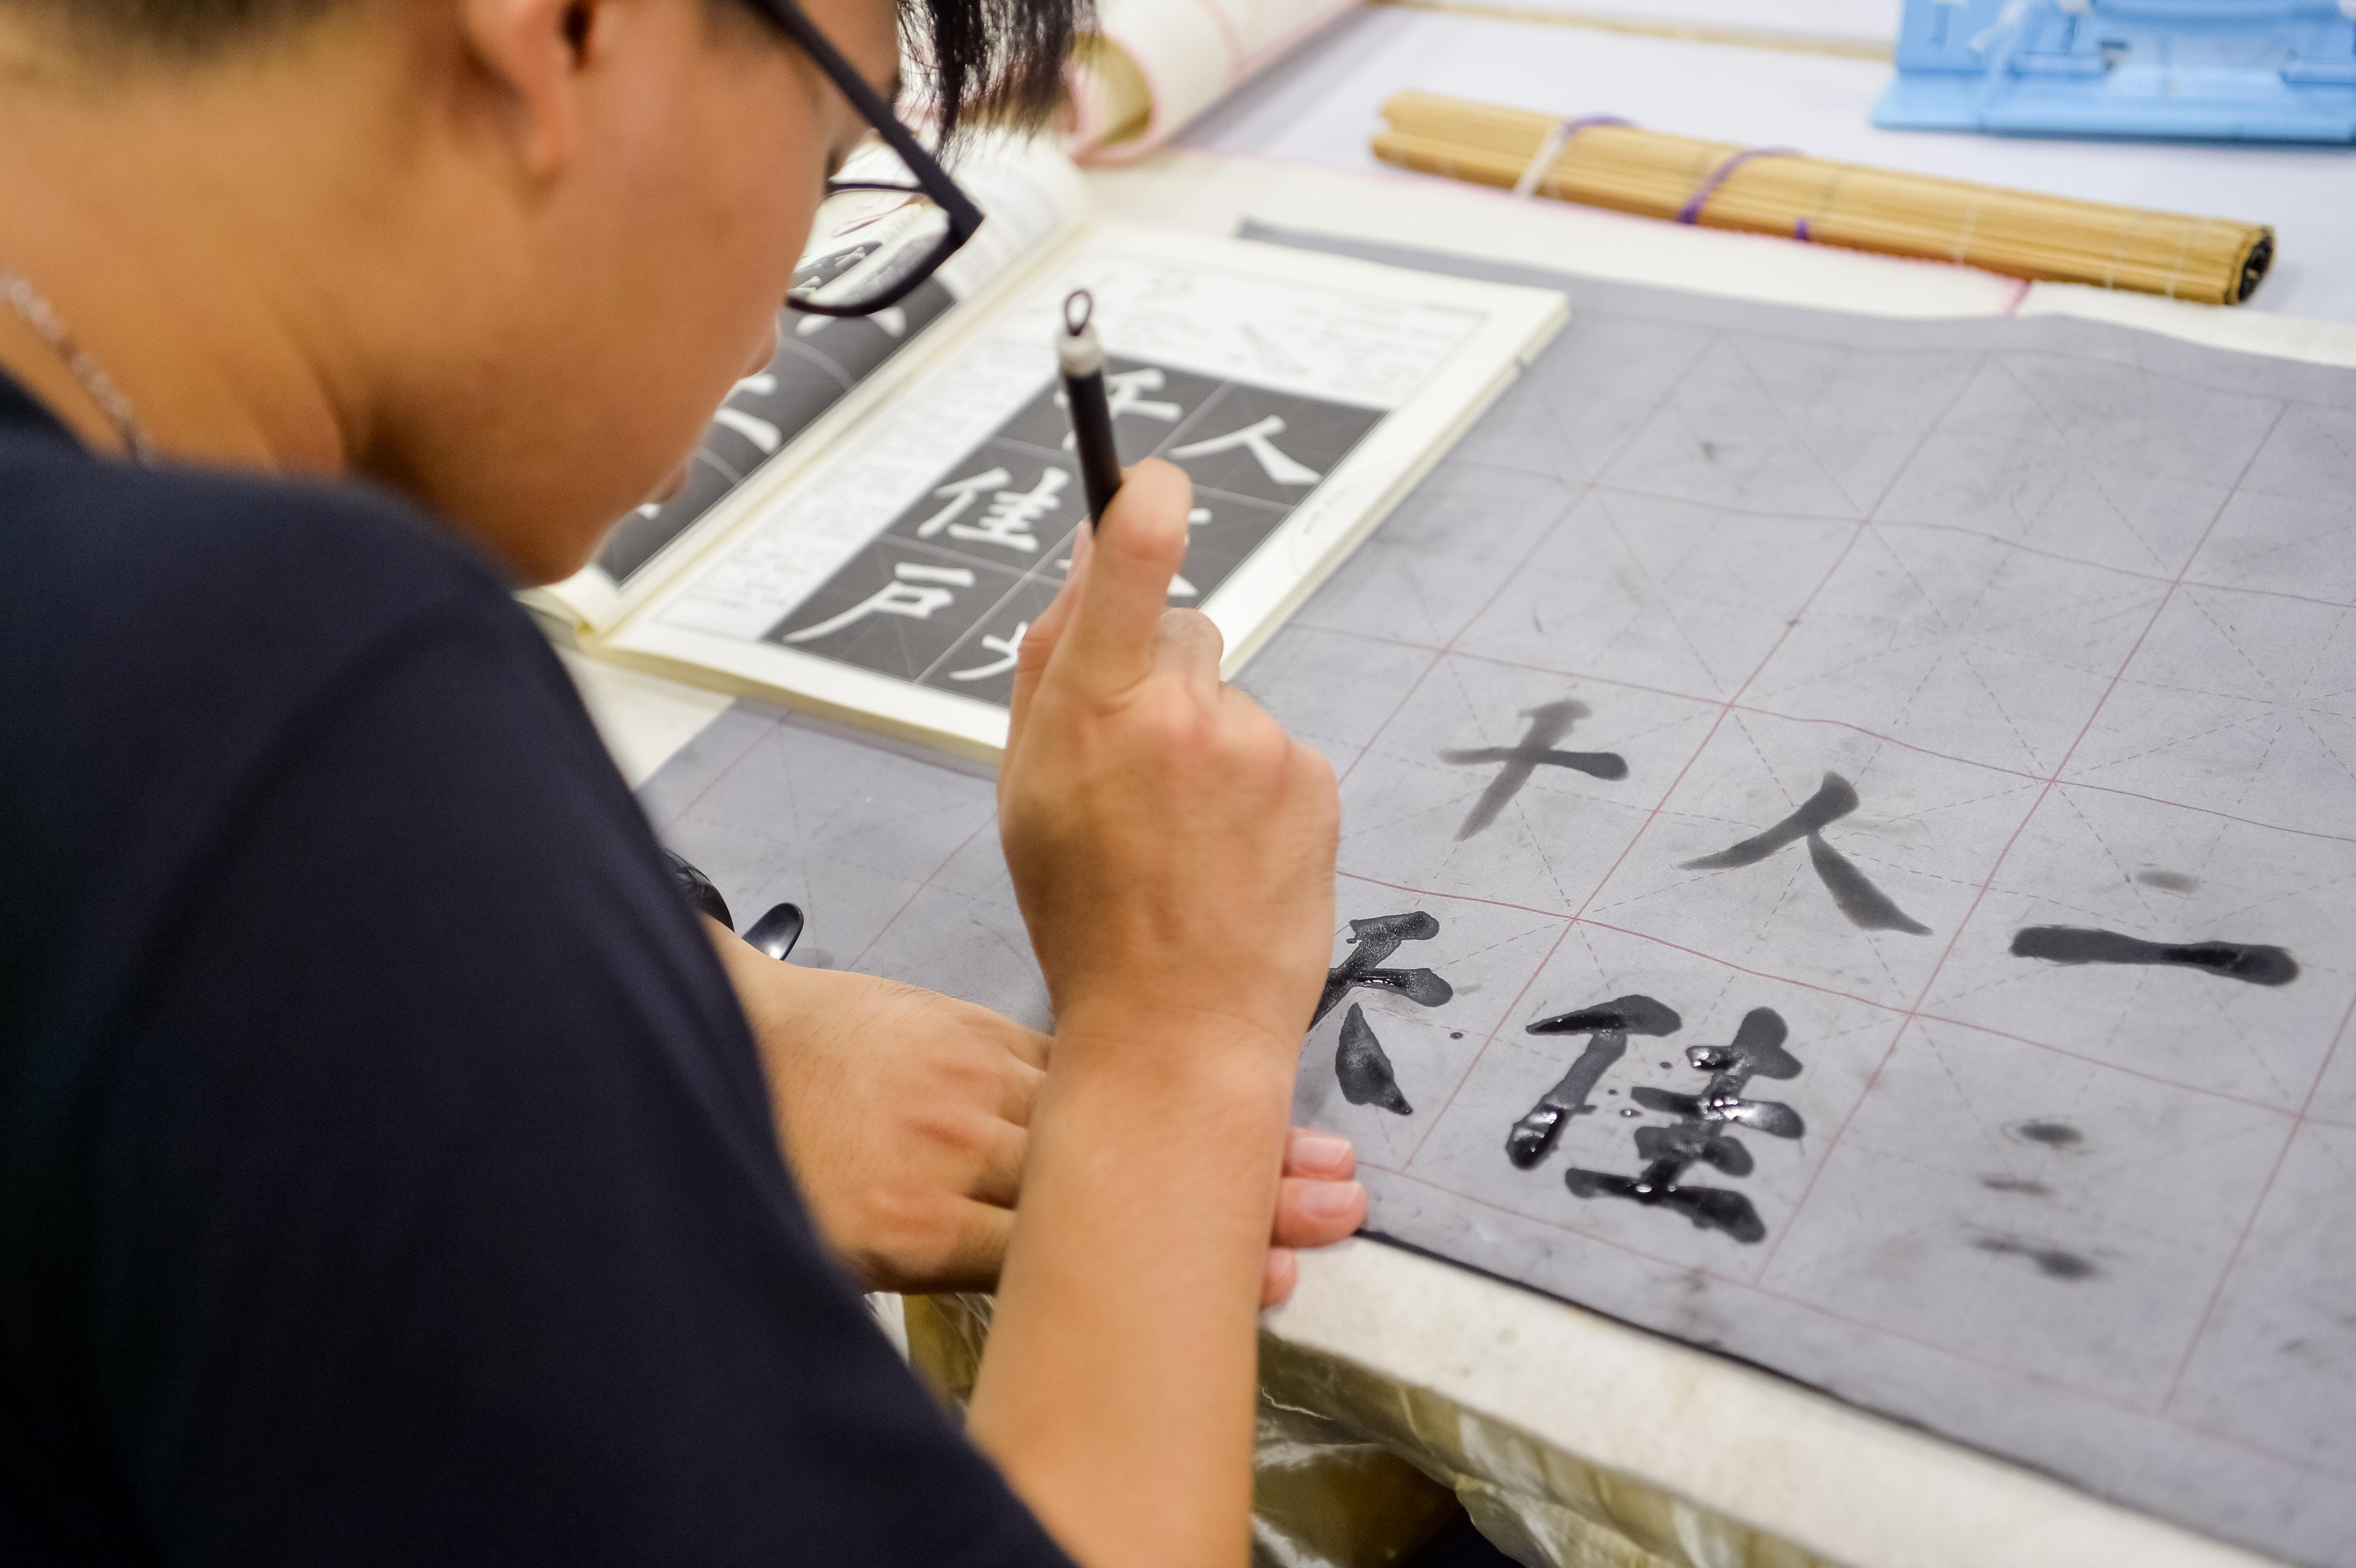 Chinese CalligraphyPainting Roashow at VBP